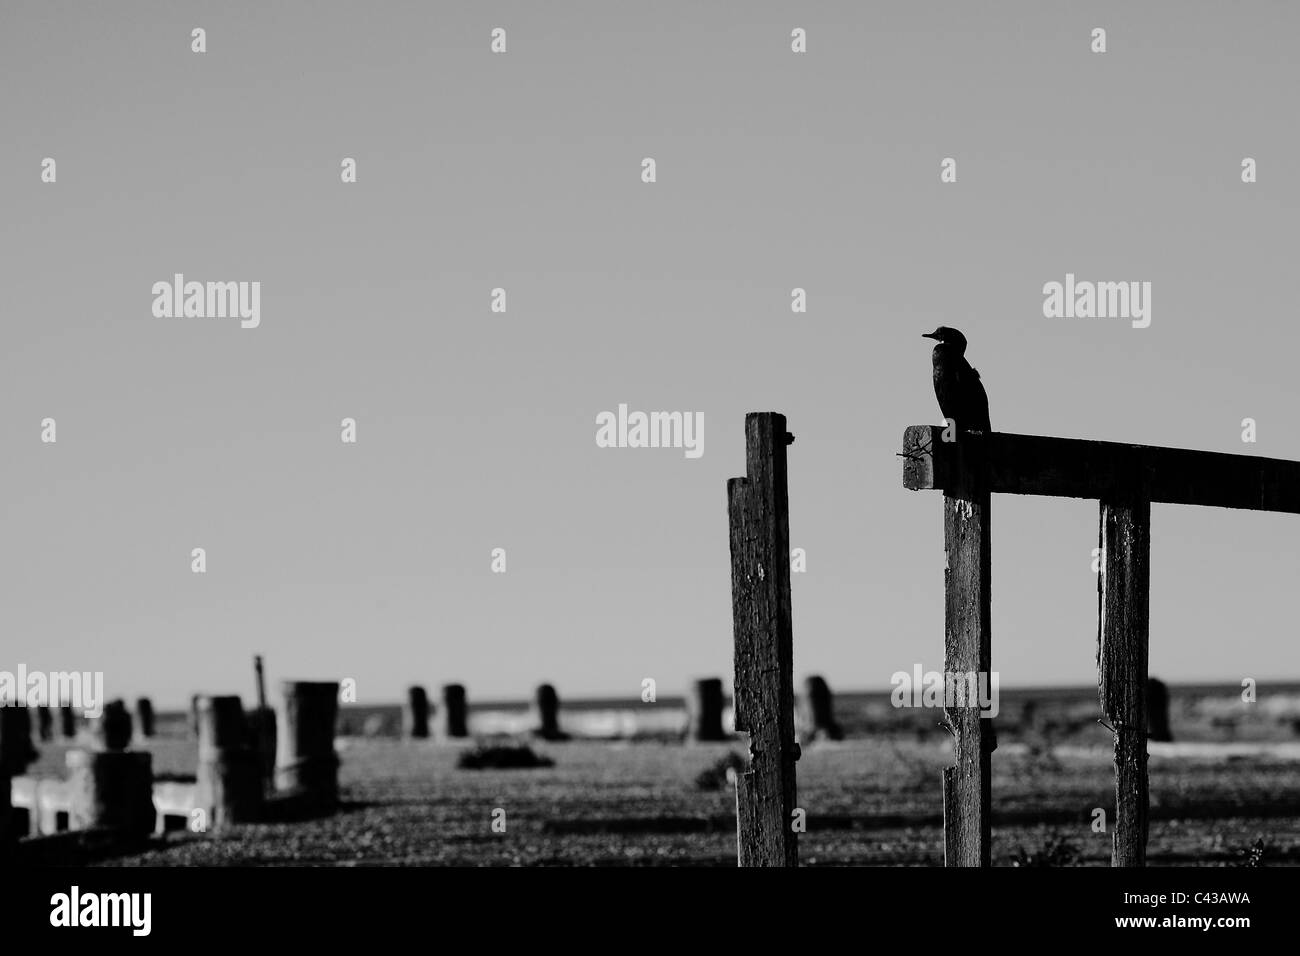 A lone Black Shag surveys the view from derelict pier in Oamaru, New Zealand. - Stock Image